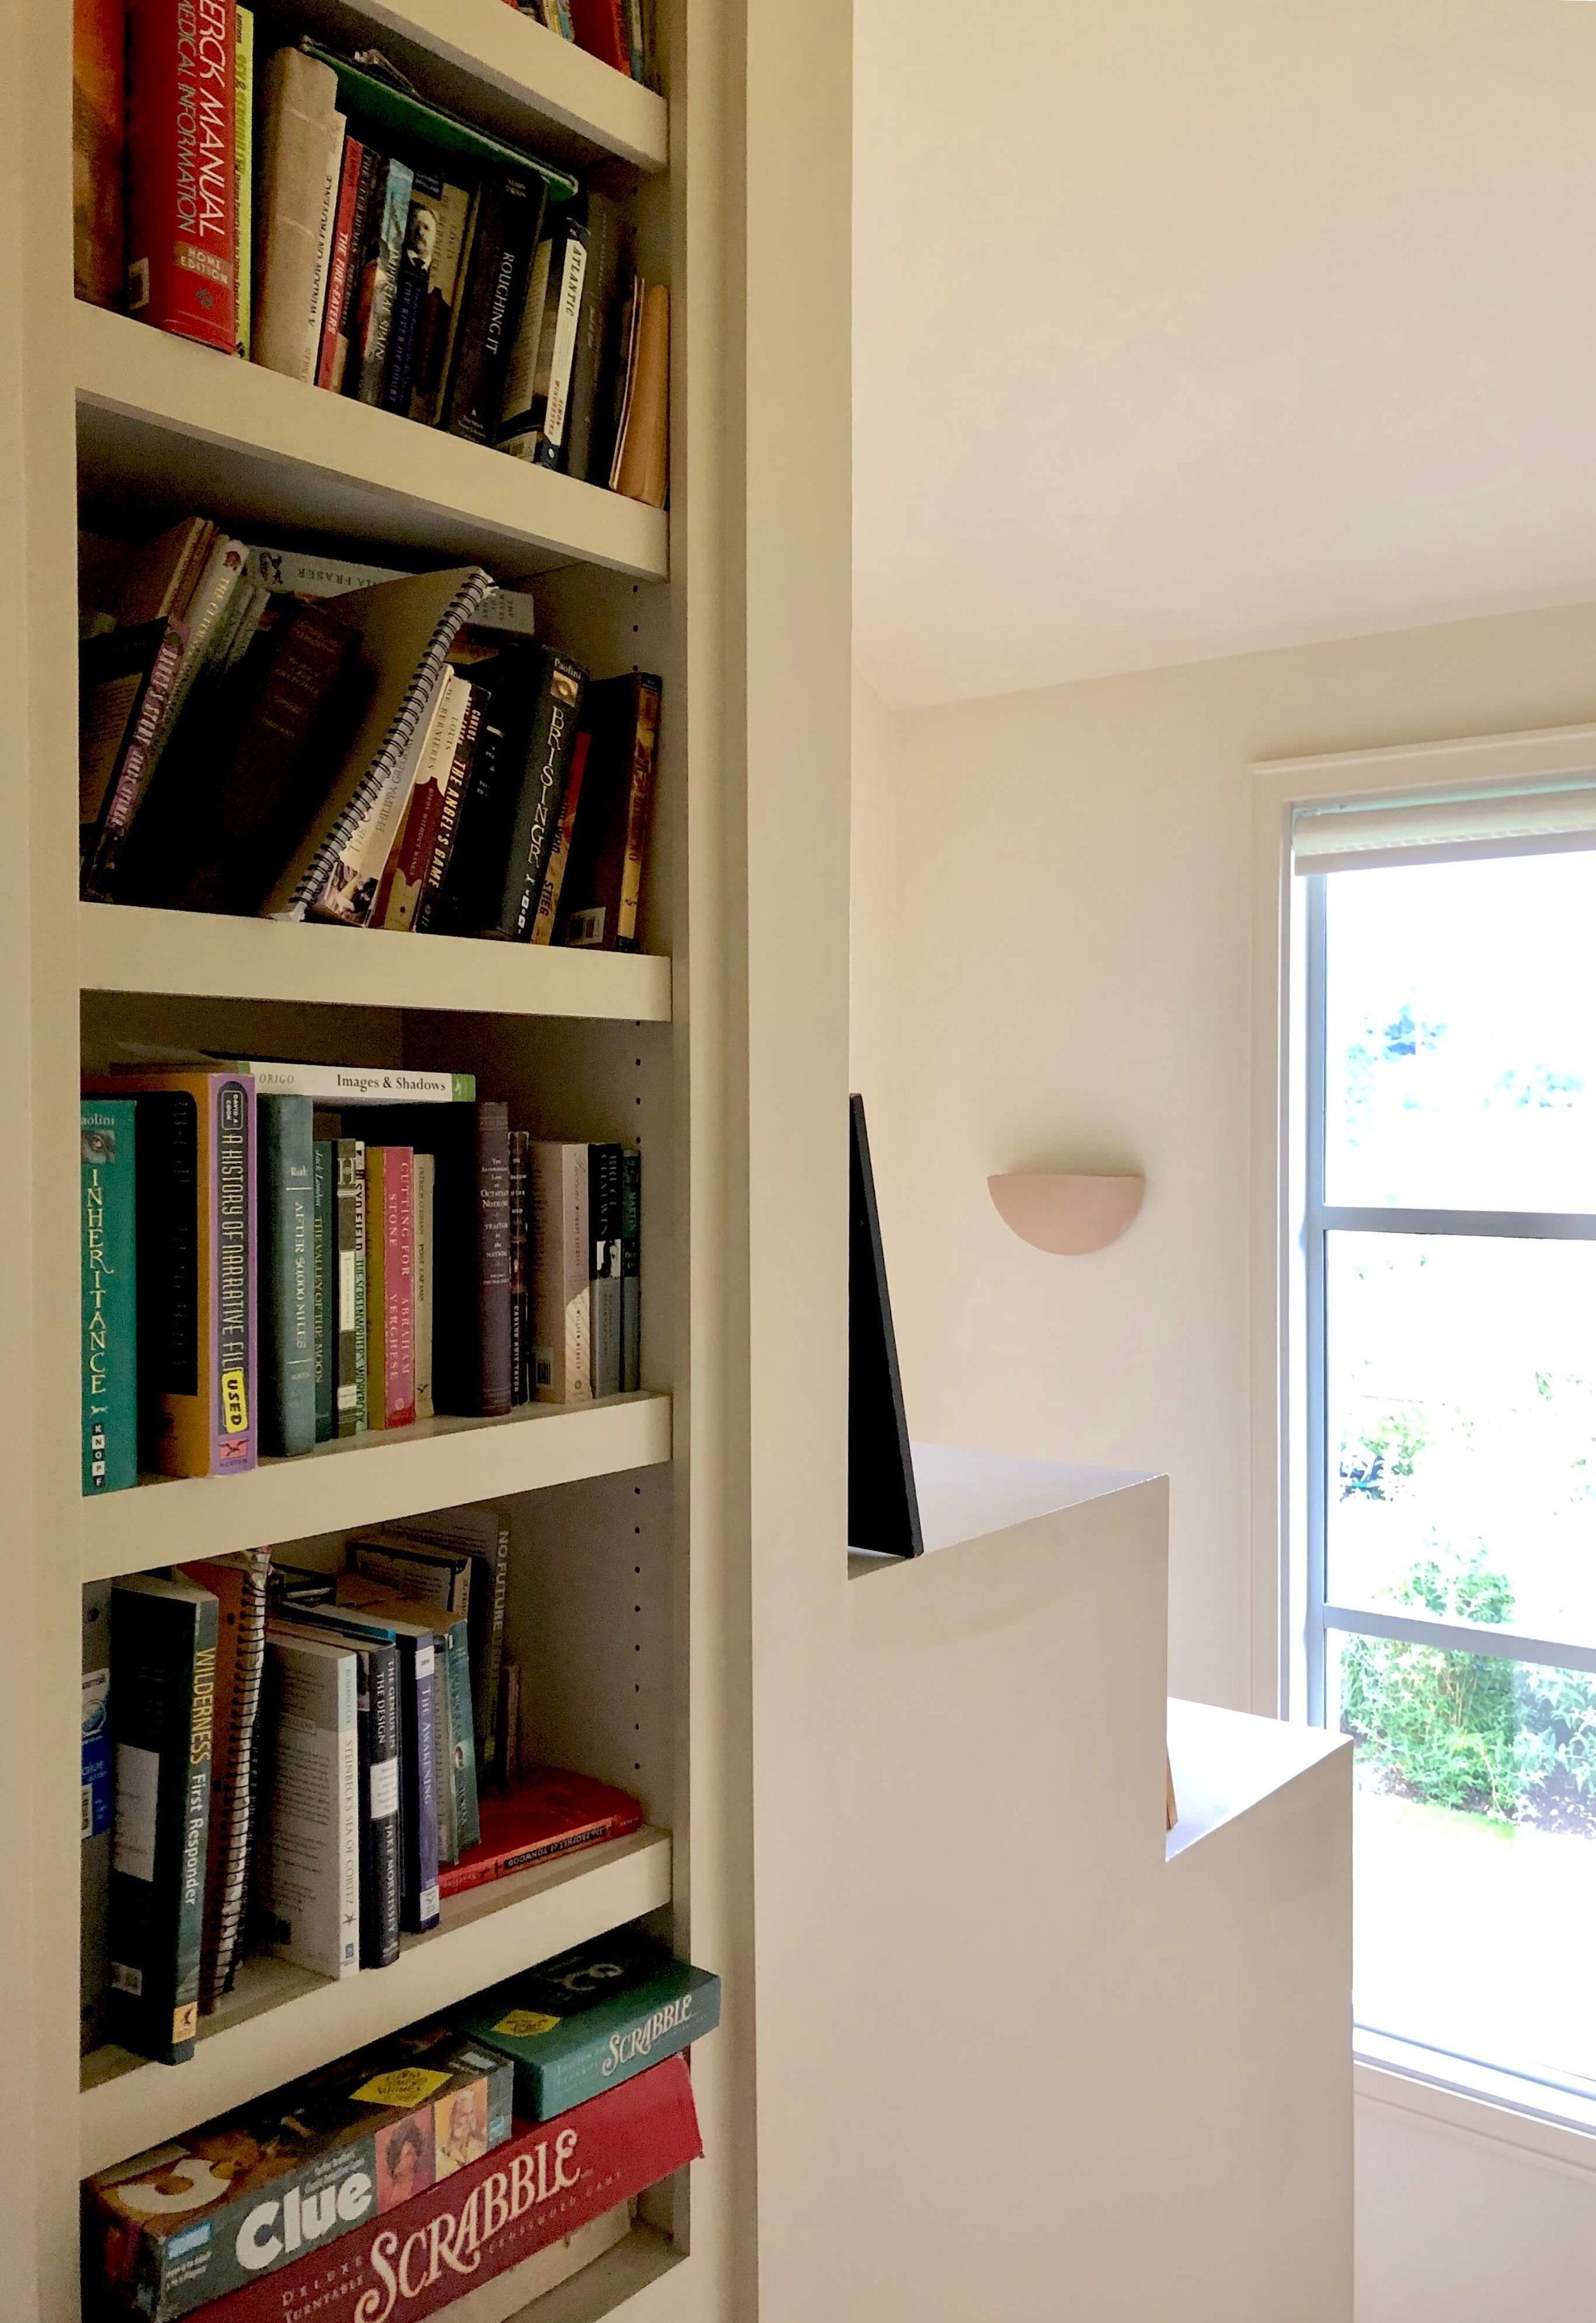 The central staircase with a tall window and more books and games in this Sonoma Valley Airbnb. #airbnb #winecountry